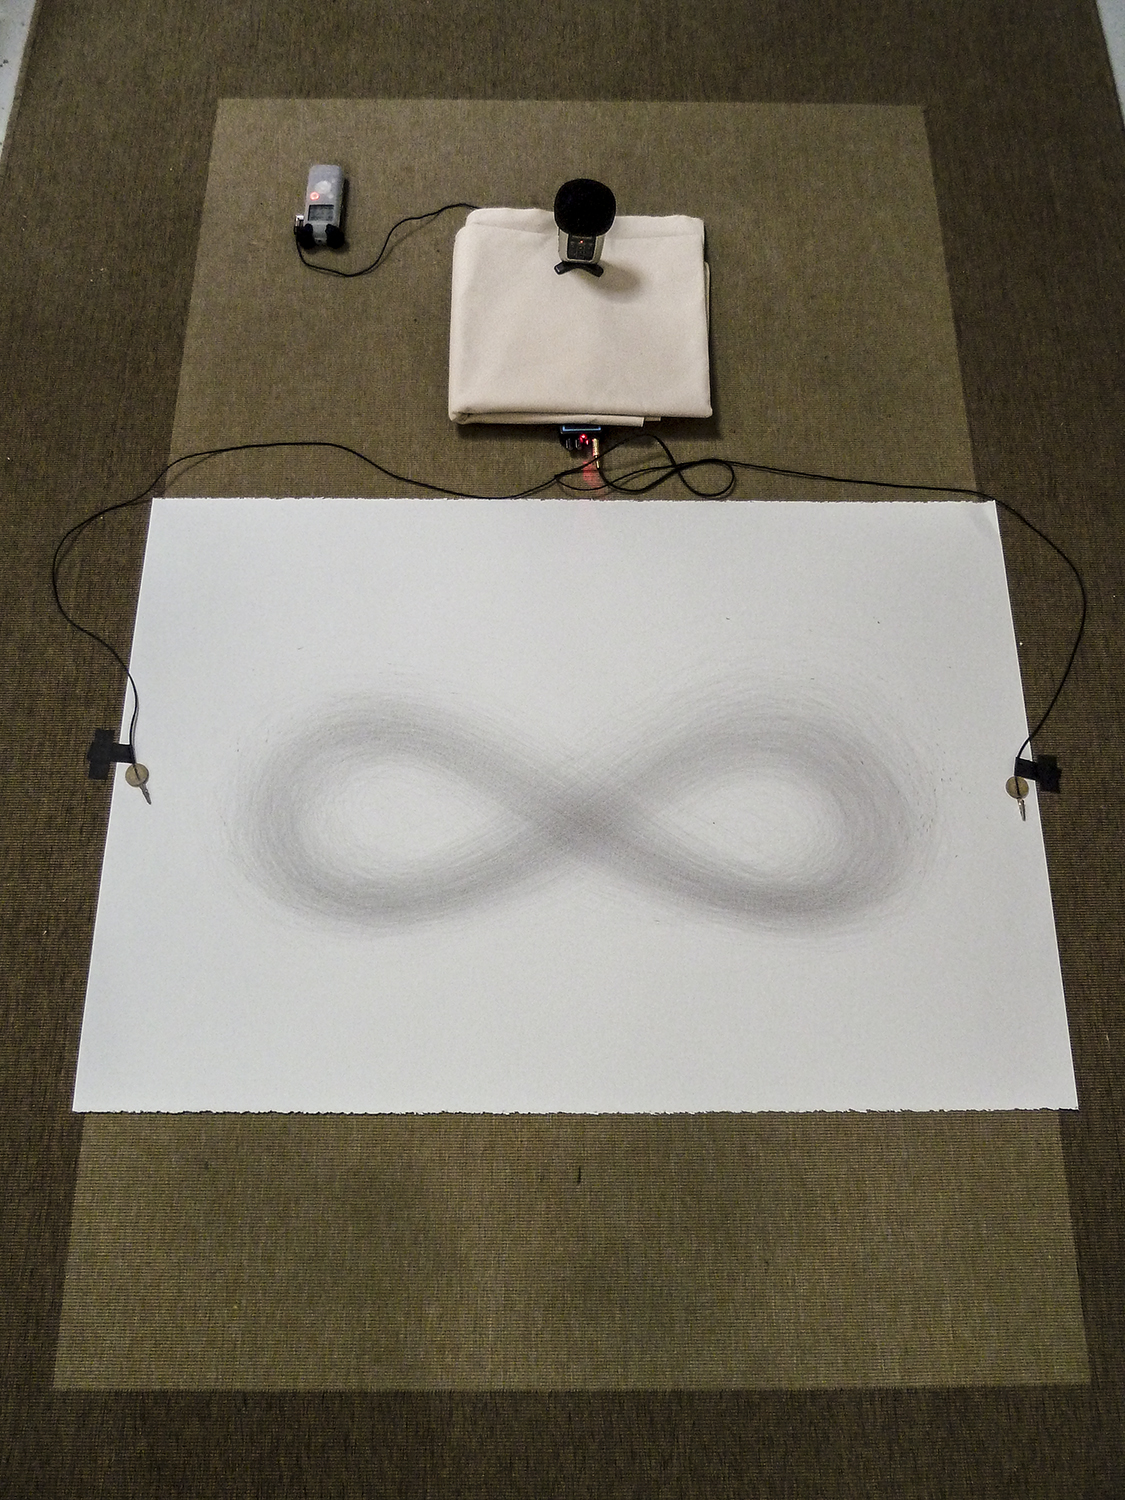 Recording the sound of drawing a lemniscate